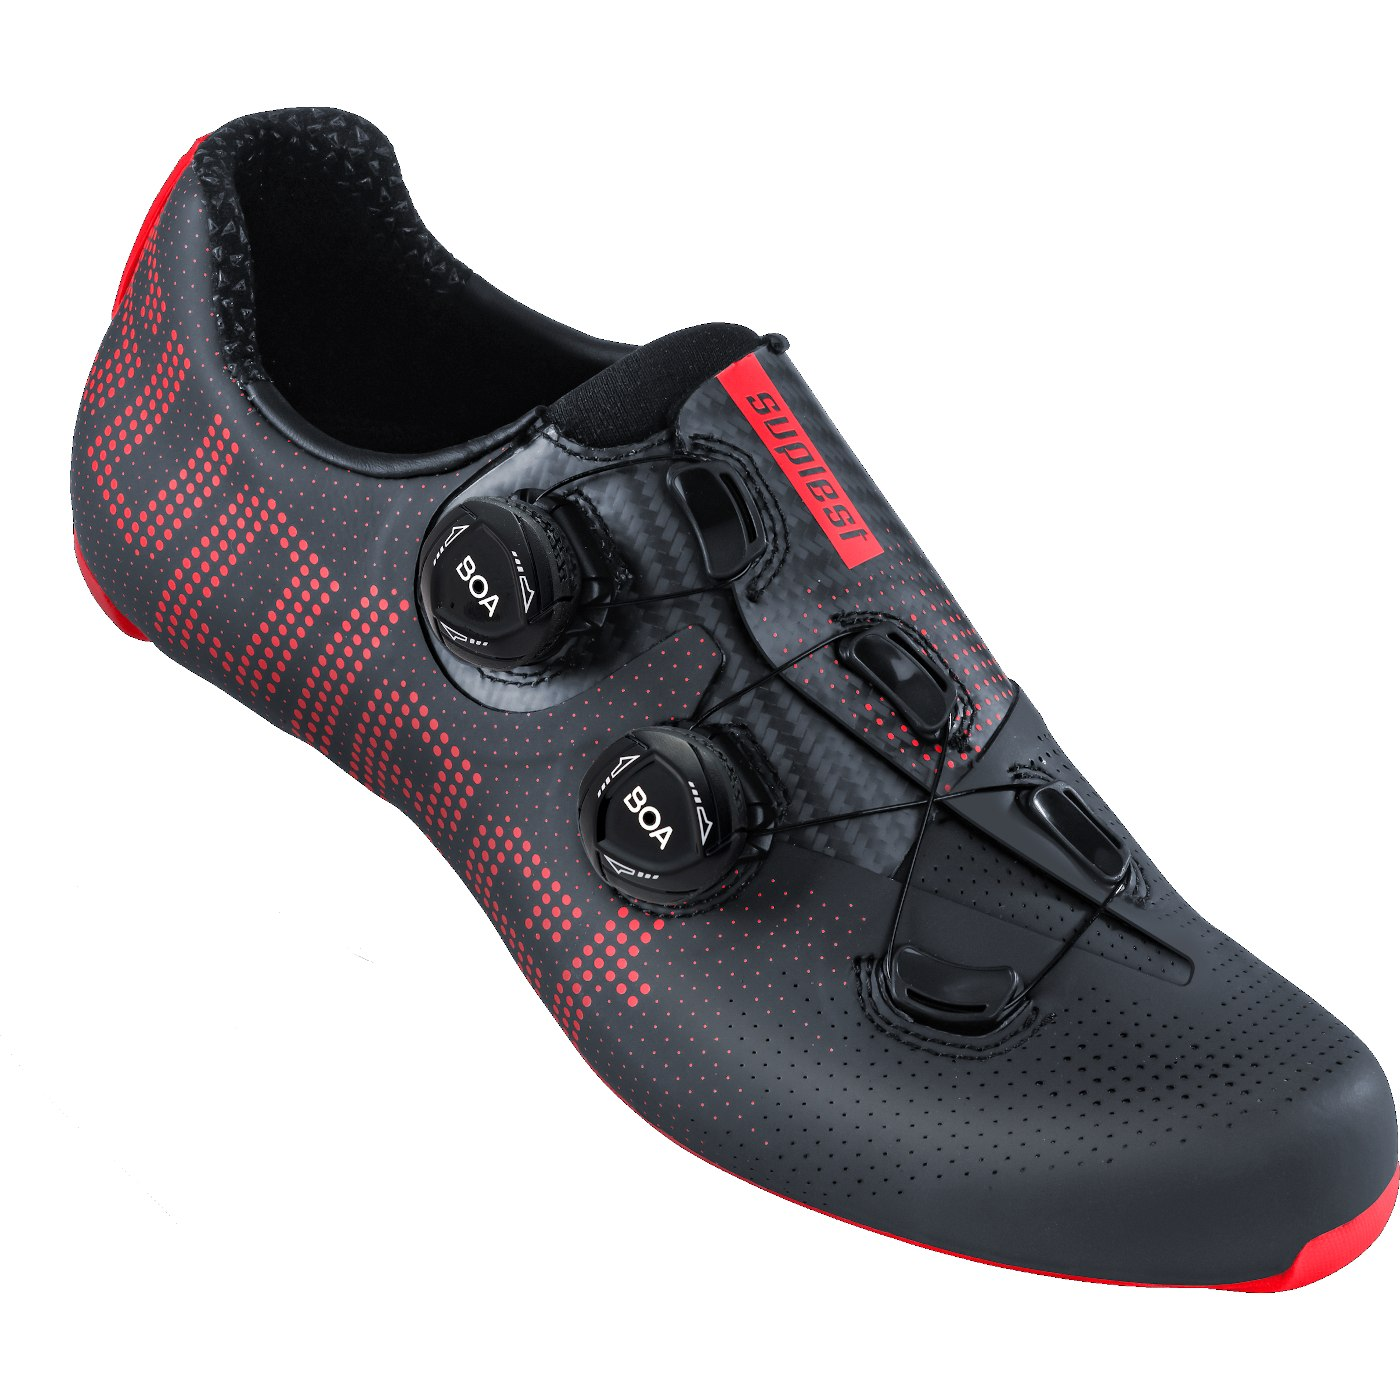 Suplest EDGE+ Double BOA IP1 Road Pro Shoe - Anthracite / Neon Red 01.061.